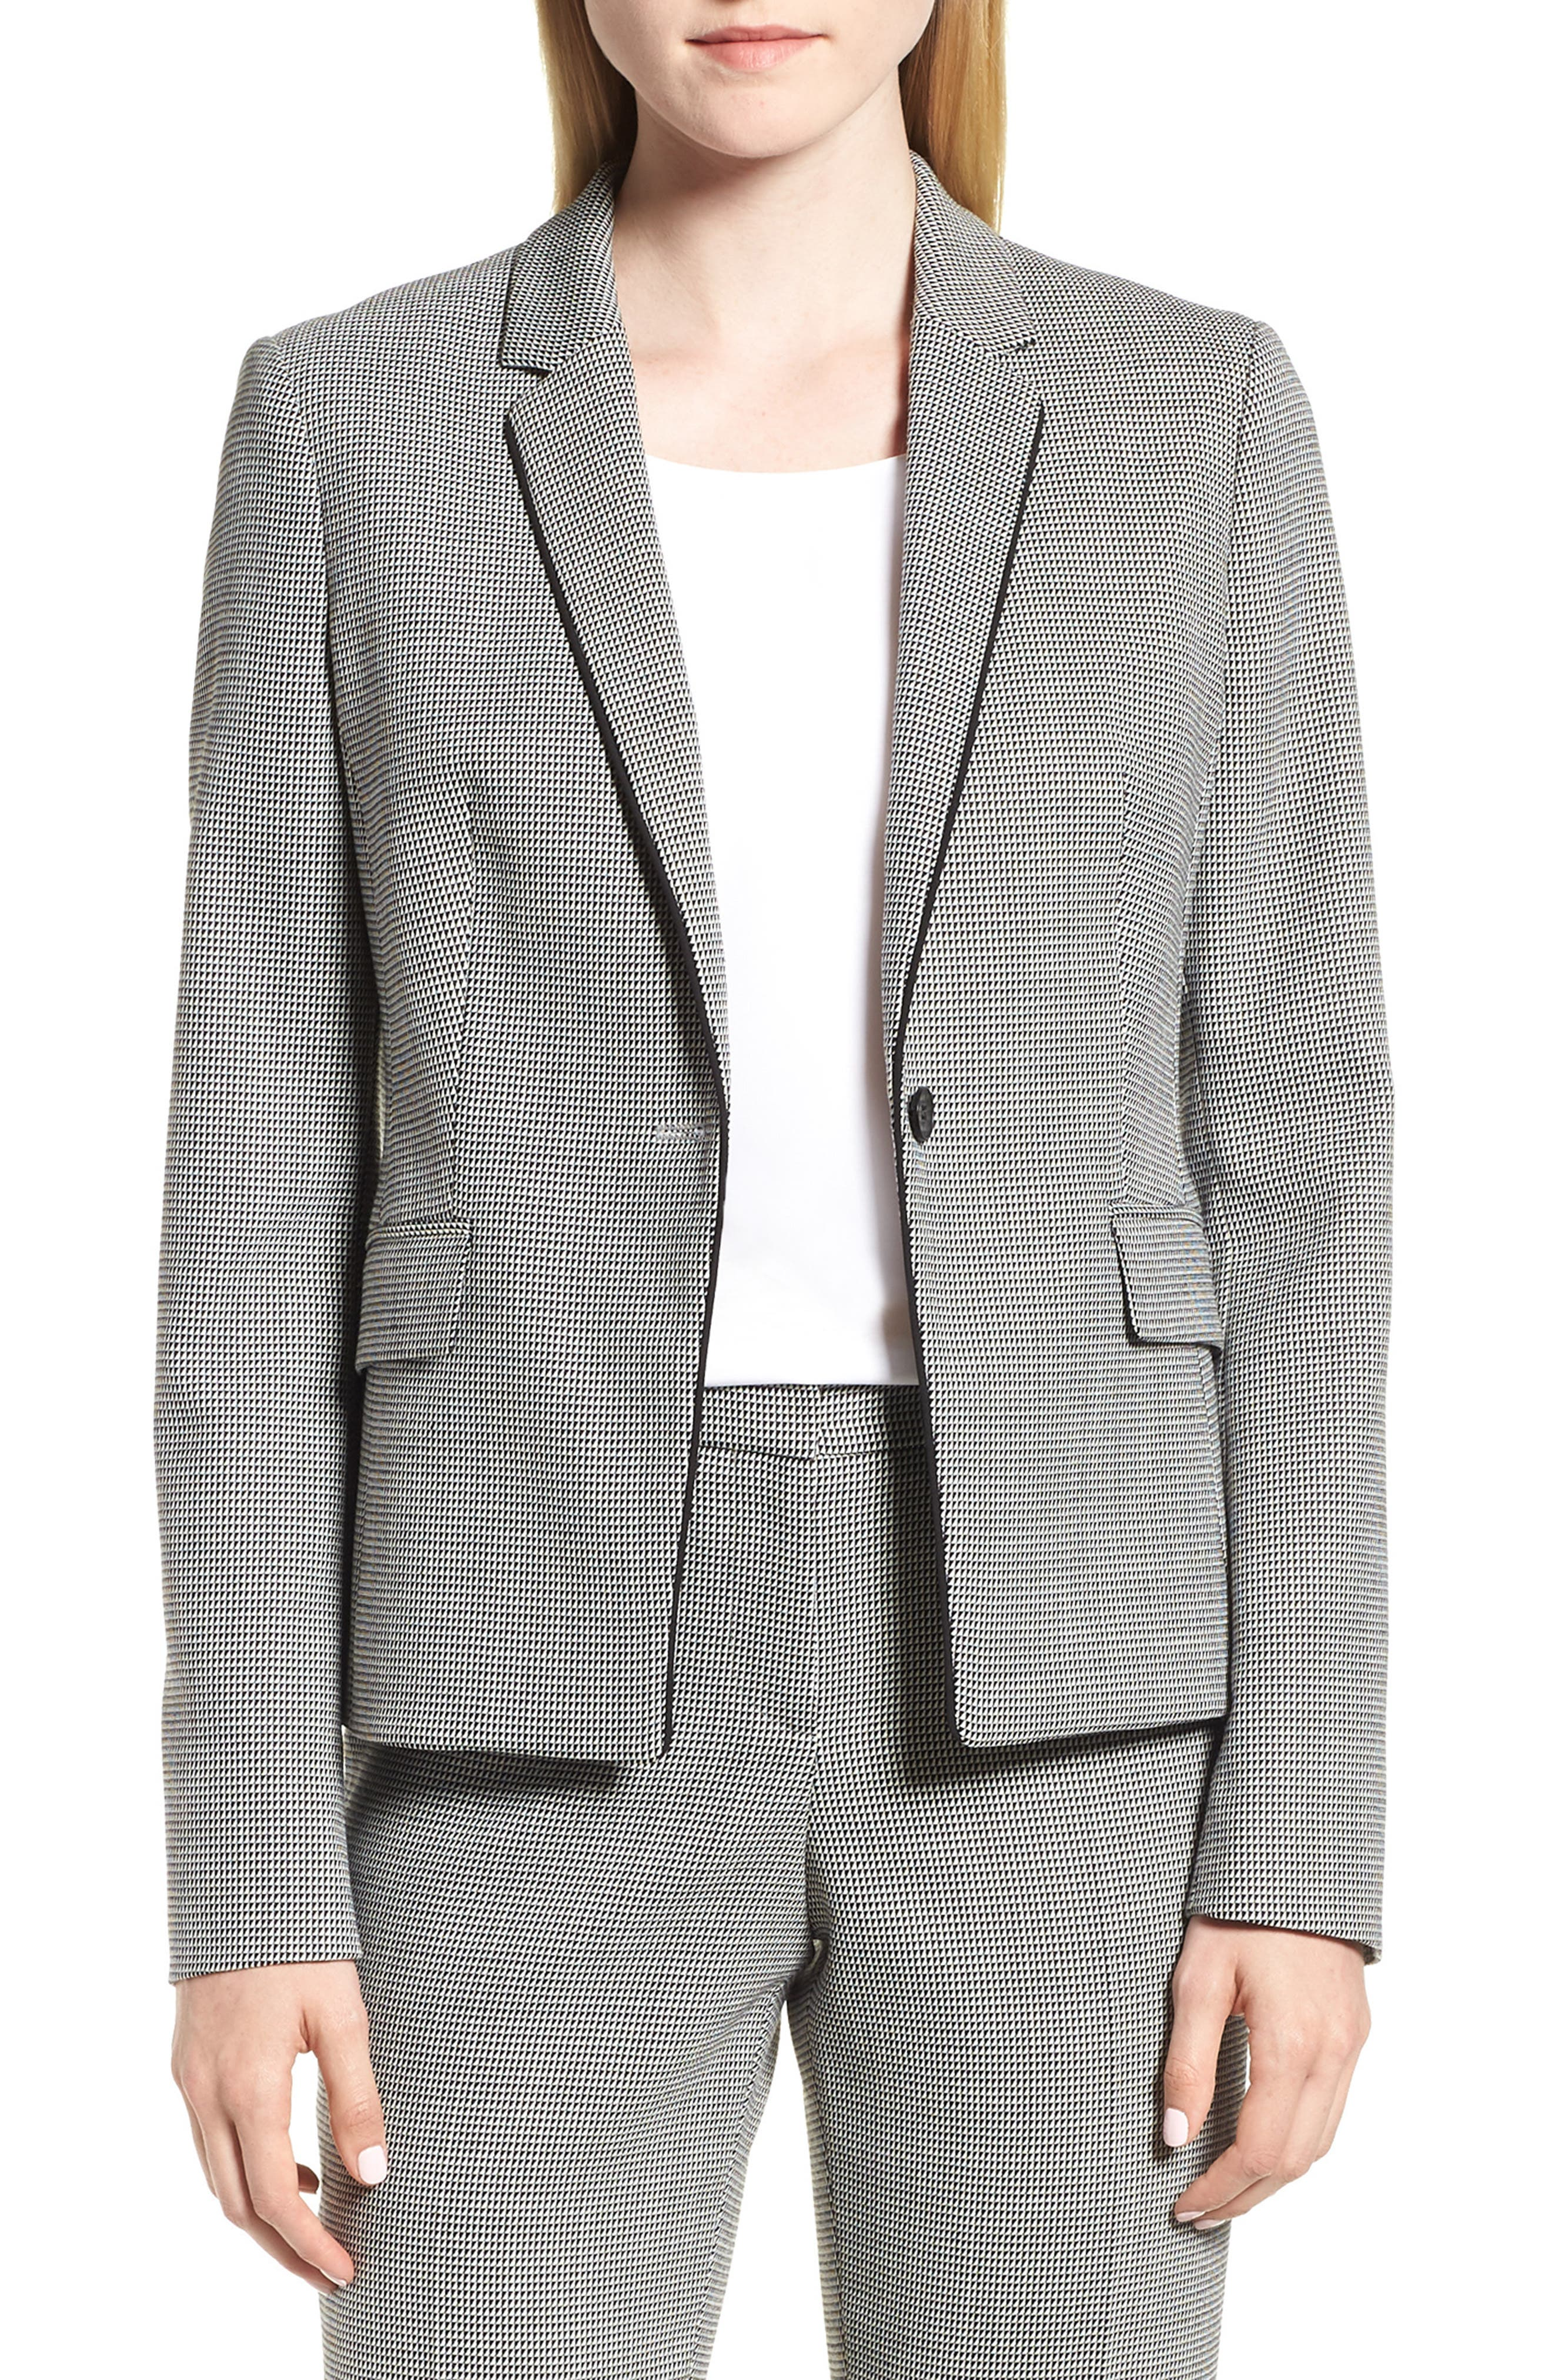 Jorita Geometric Wool Blend Suit Jacket,                         Main,                         color, 009